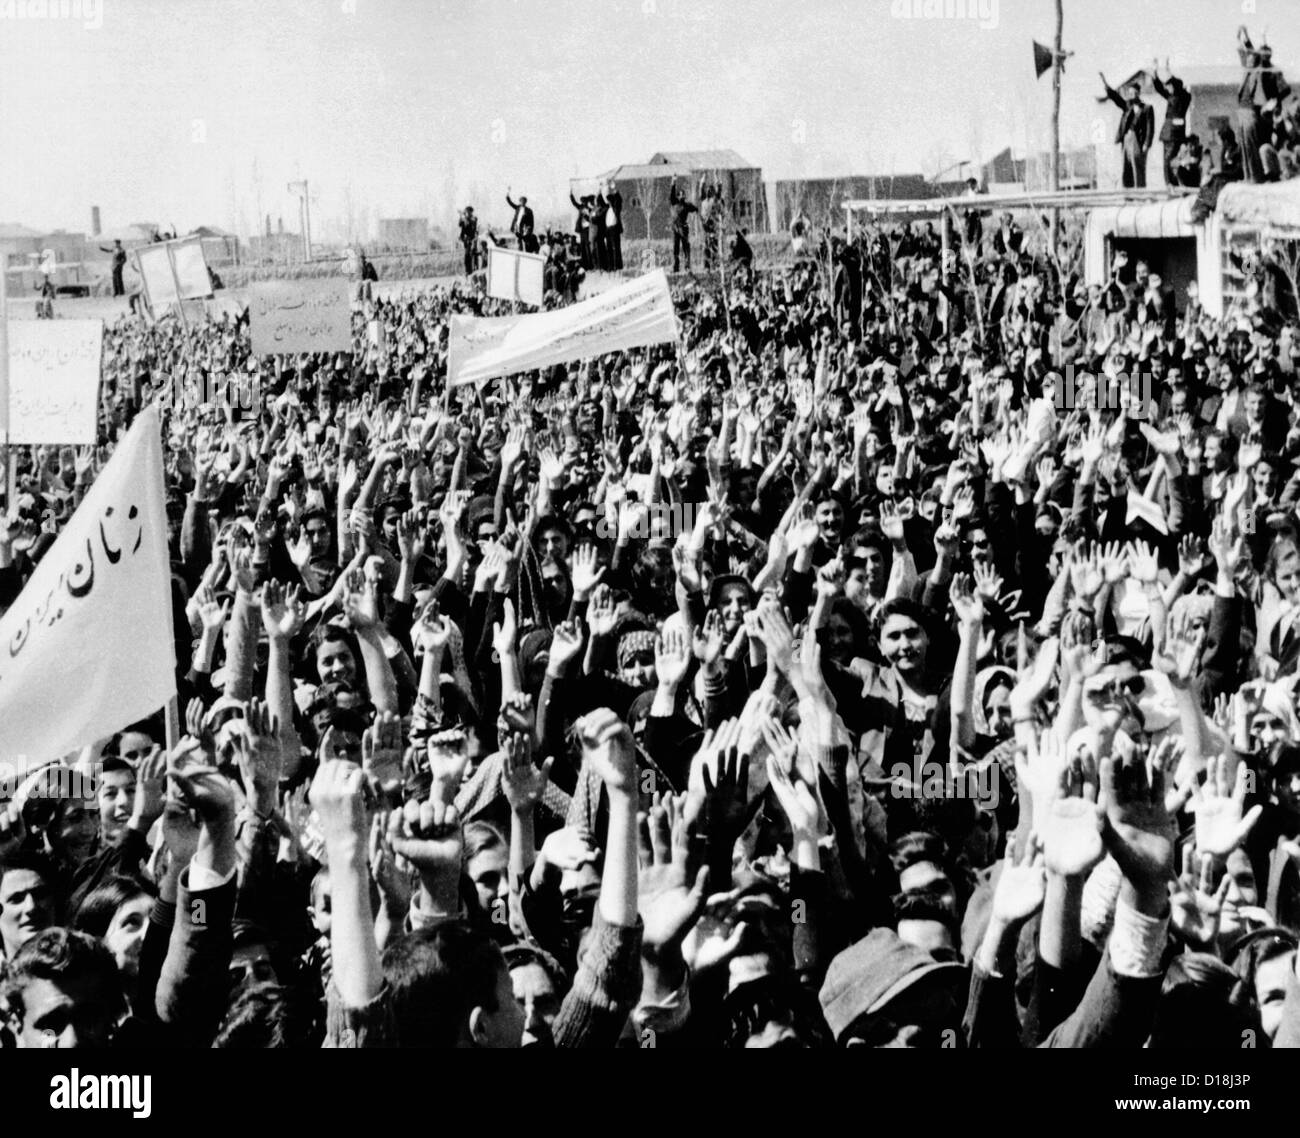 Anti-western demonstration in Iran in 1952. When Iran nationalized the Anglo Iranian Oil Company in 1951, Western Stock Photo